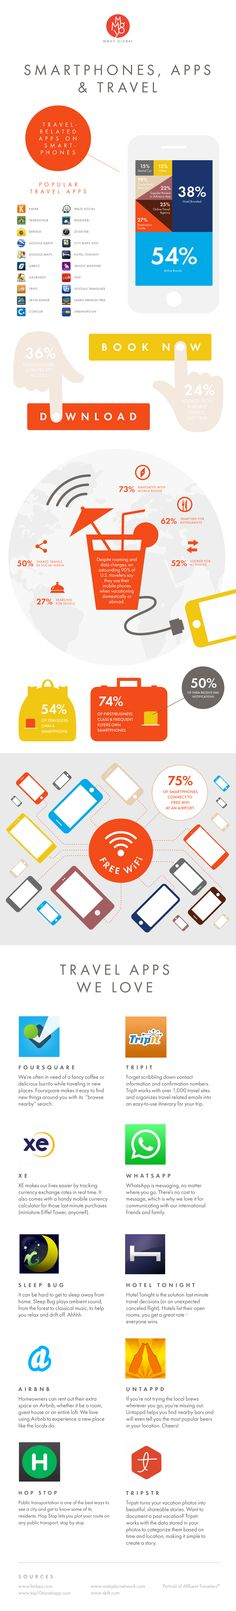 News - Infographic Smartphones Apps & Travel - MMGY Global | Travel Marketing Agency